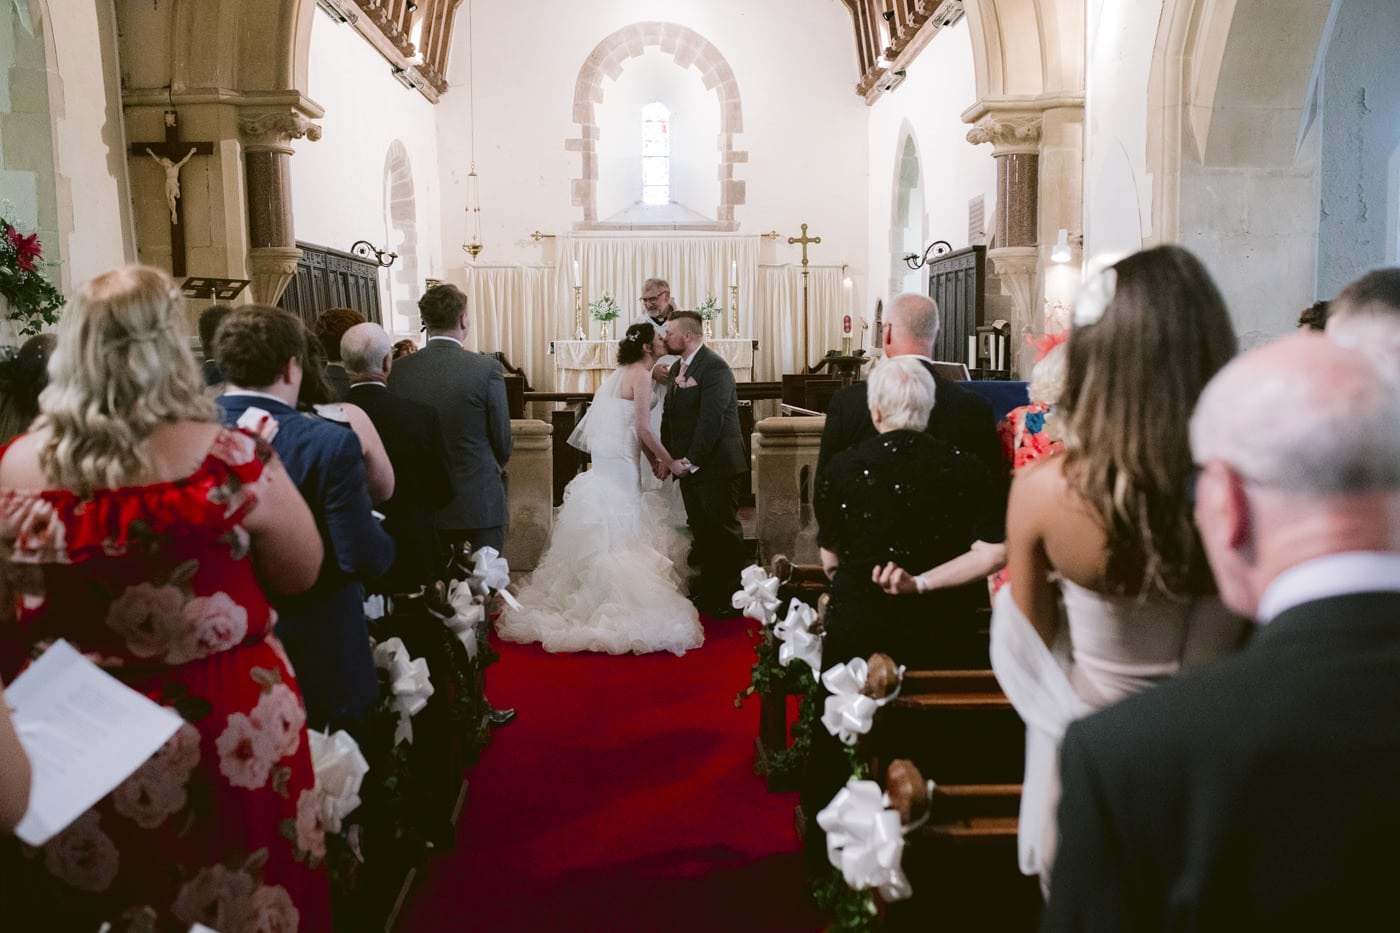 Guests and Bride and Groom Standing in Main Church Wedding Hall Portrait